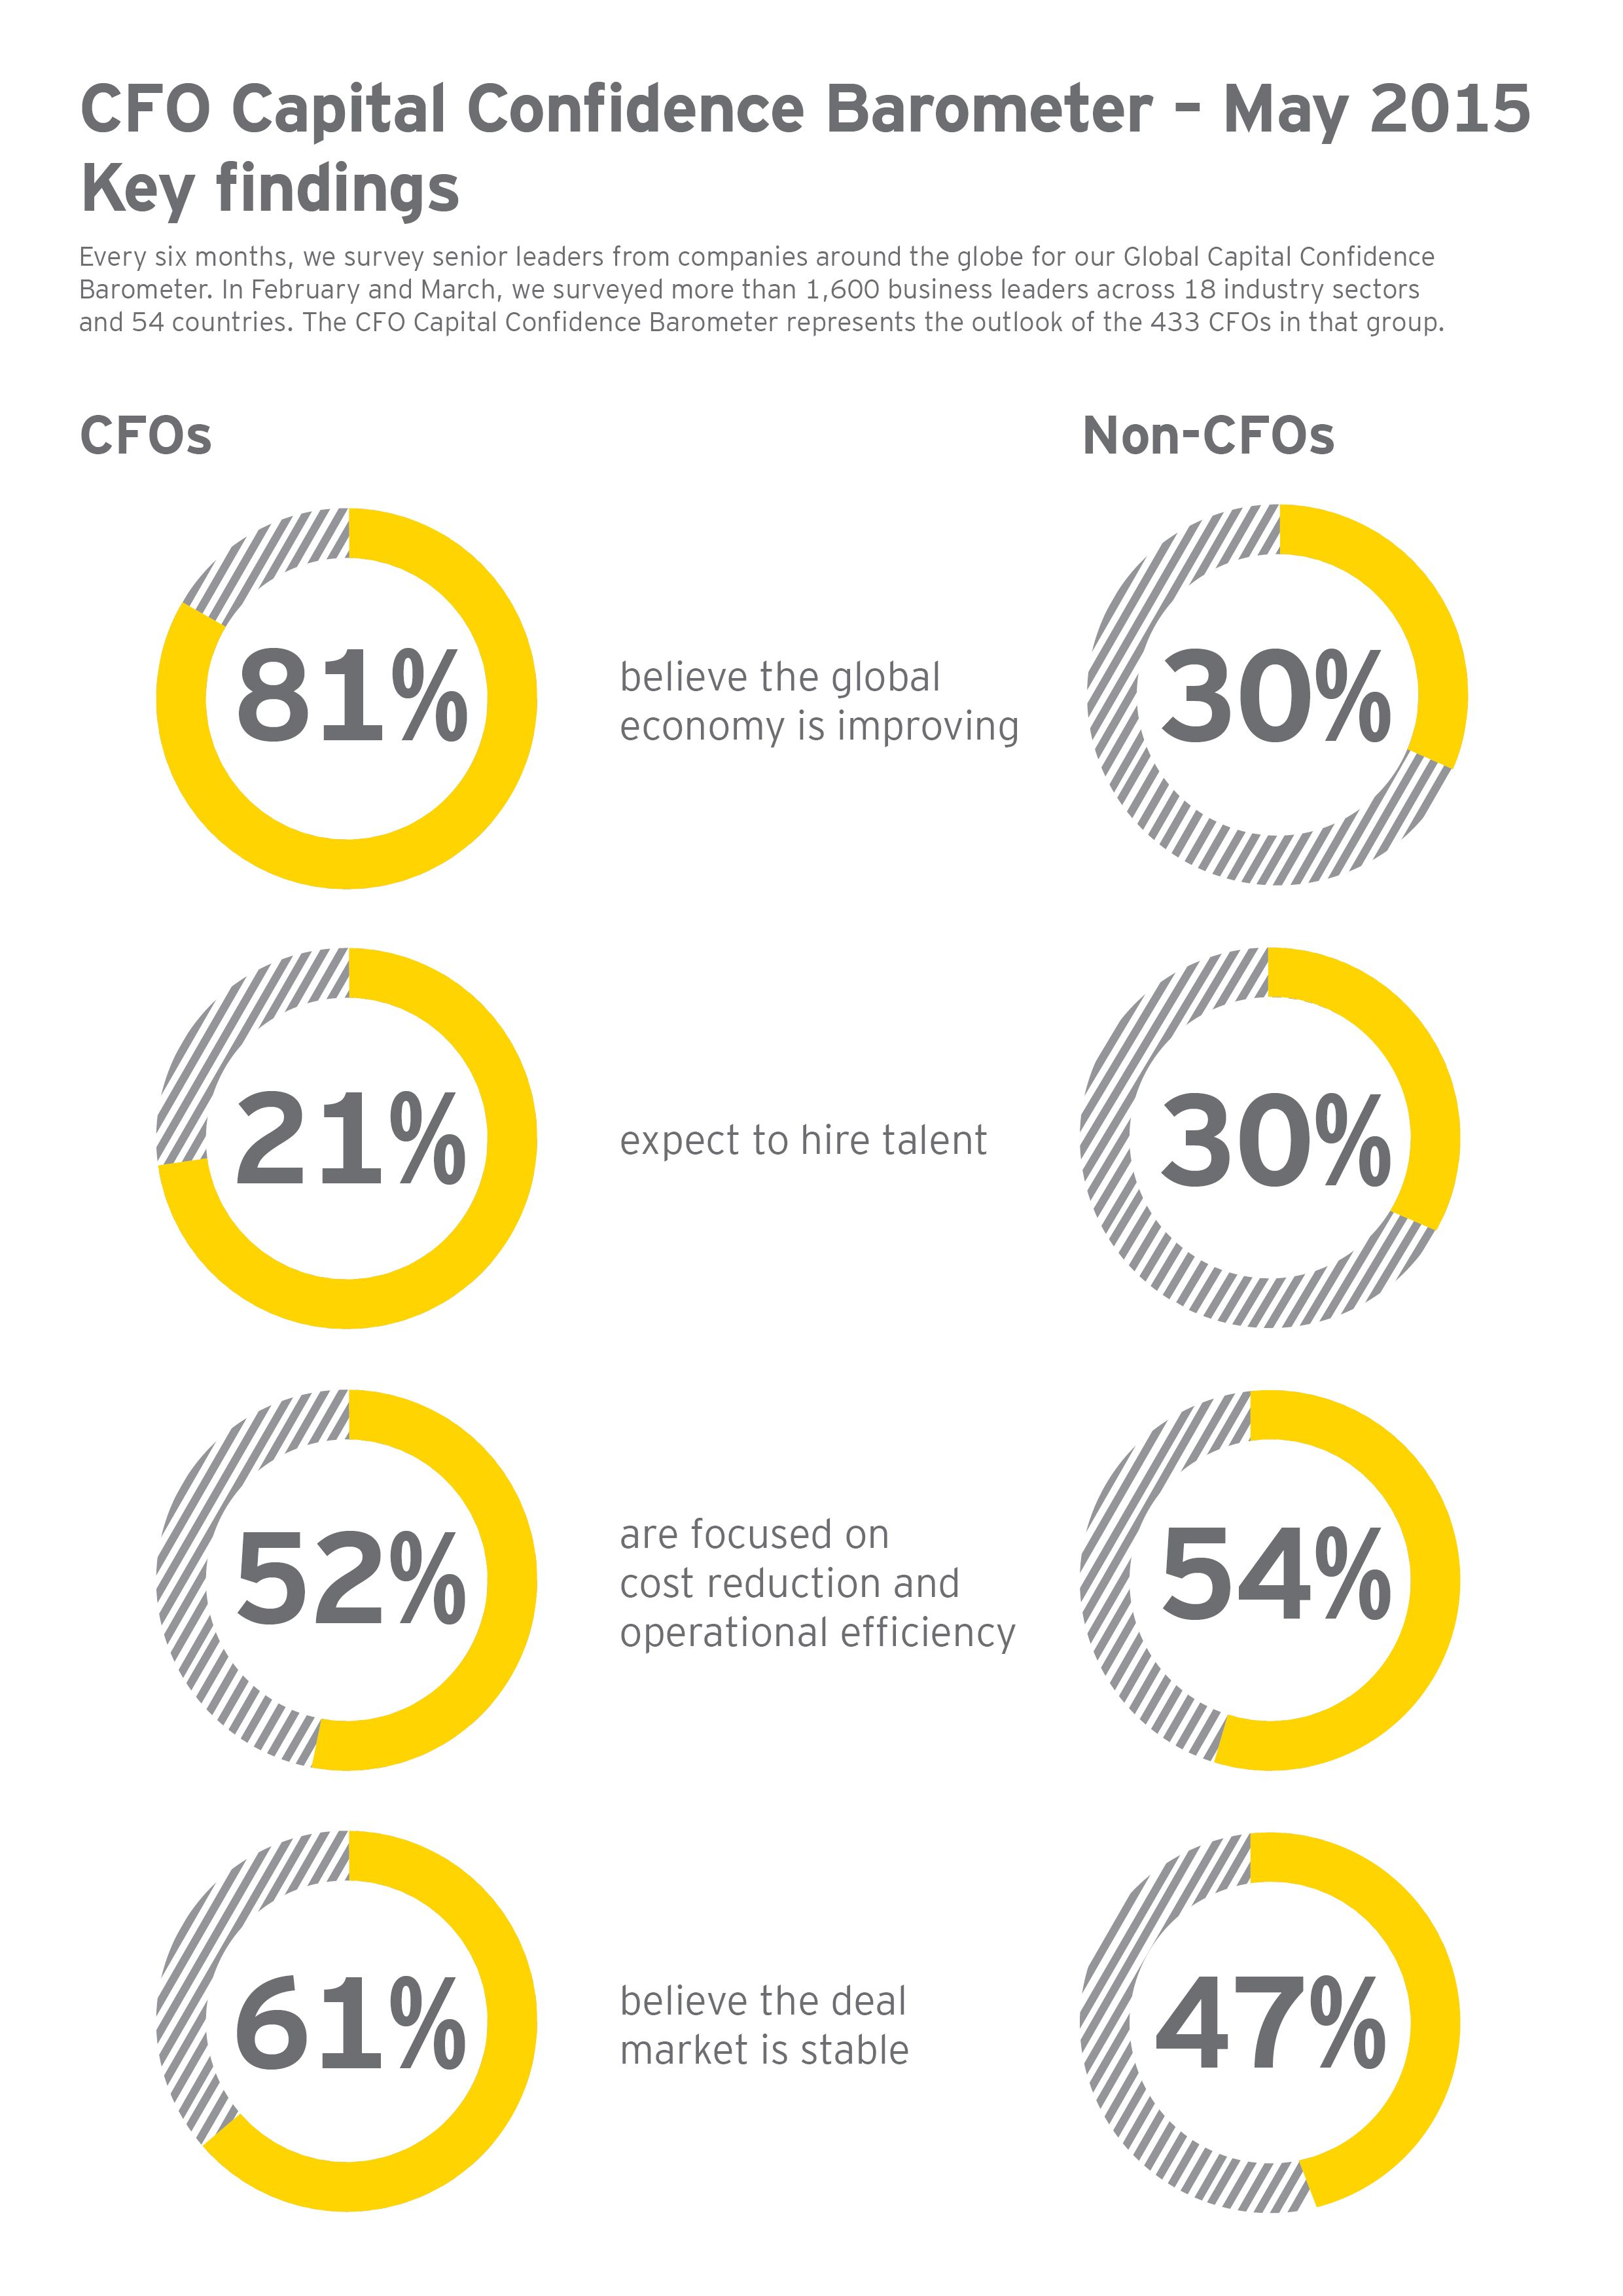 In the ey may 2015 cfo capital confidence barometer more